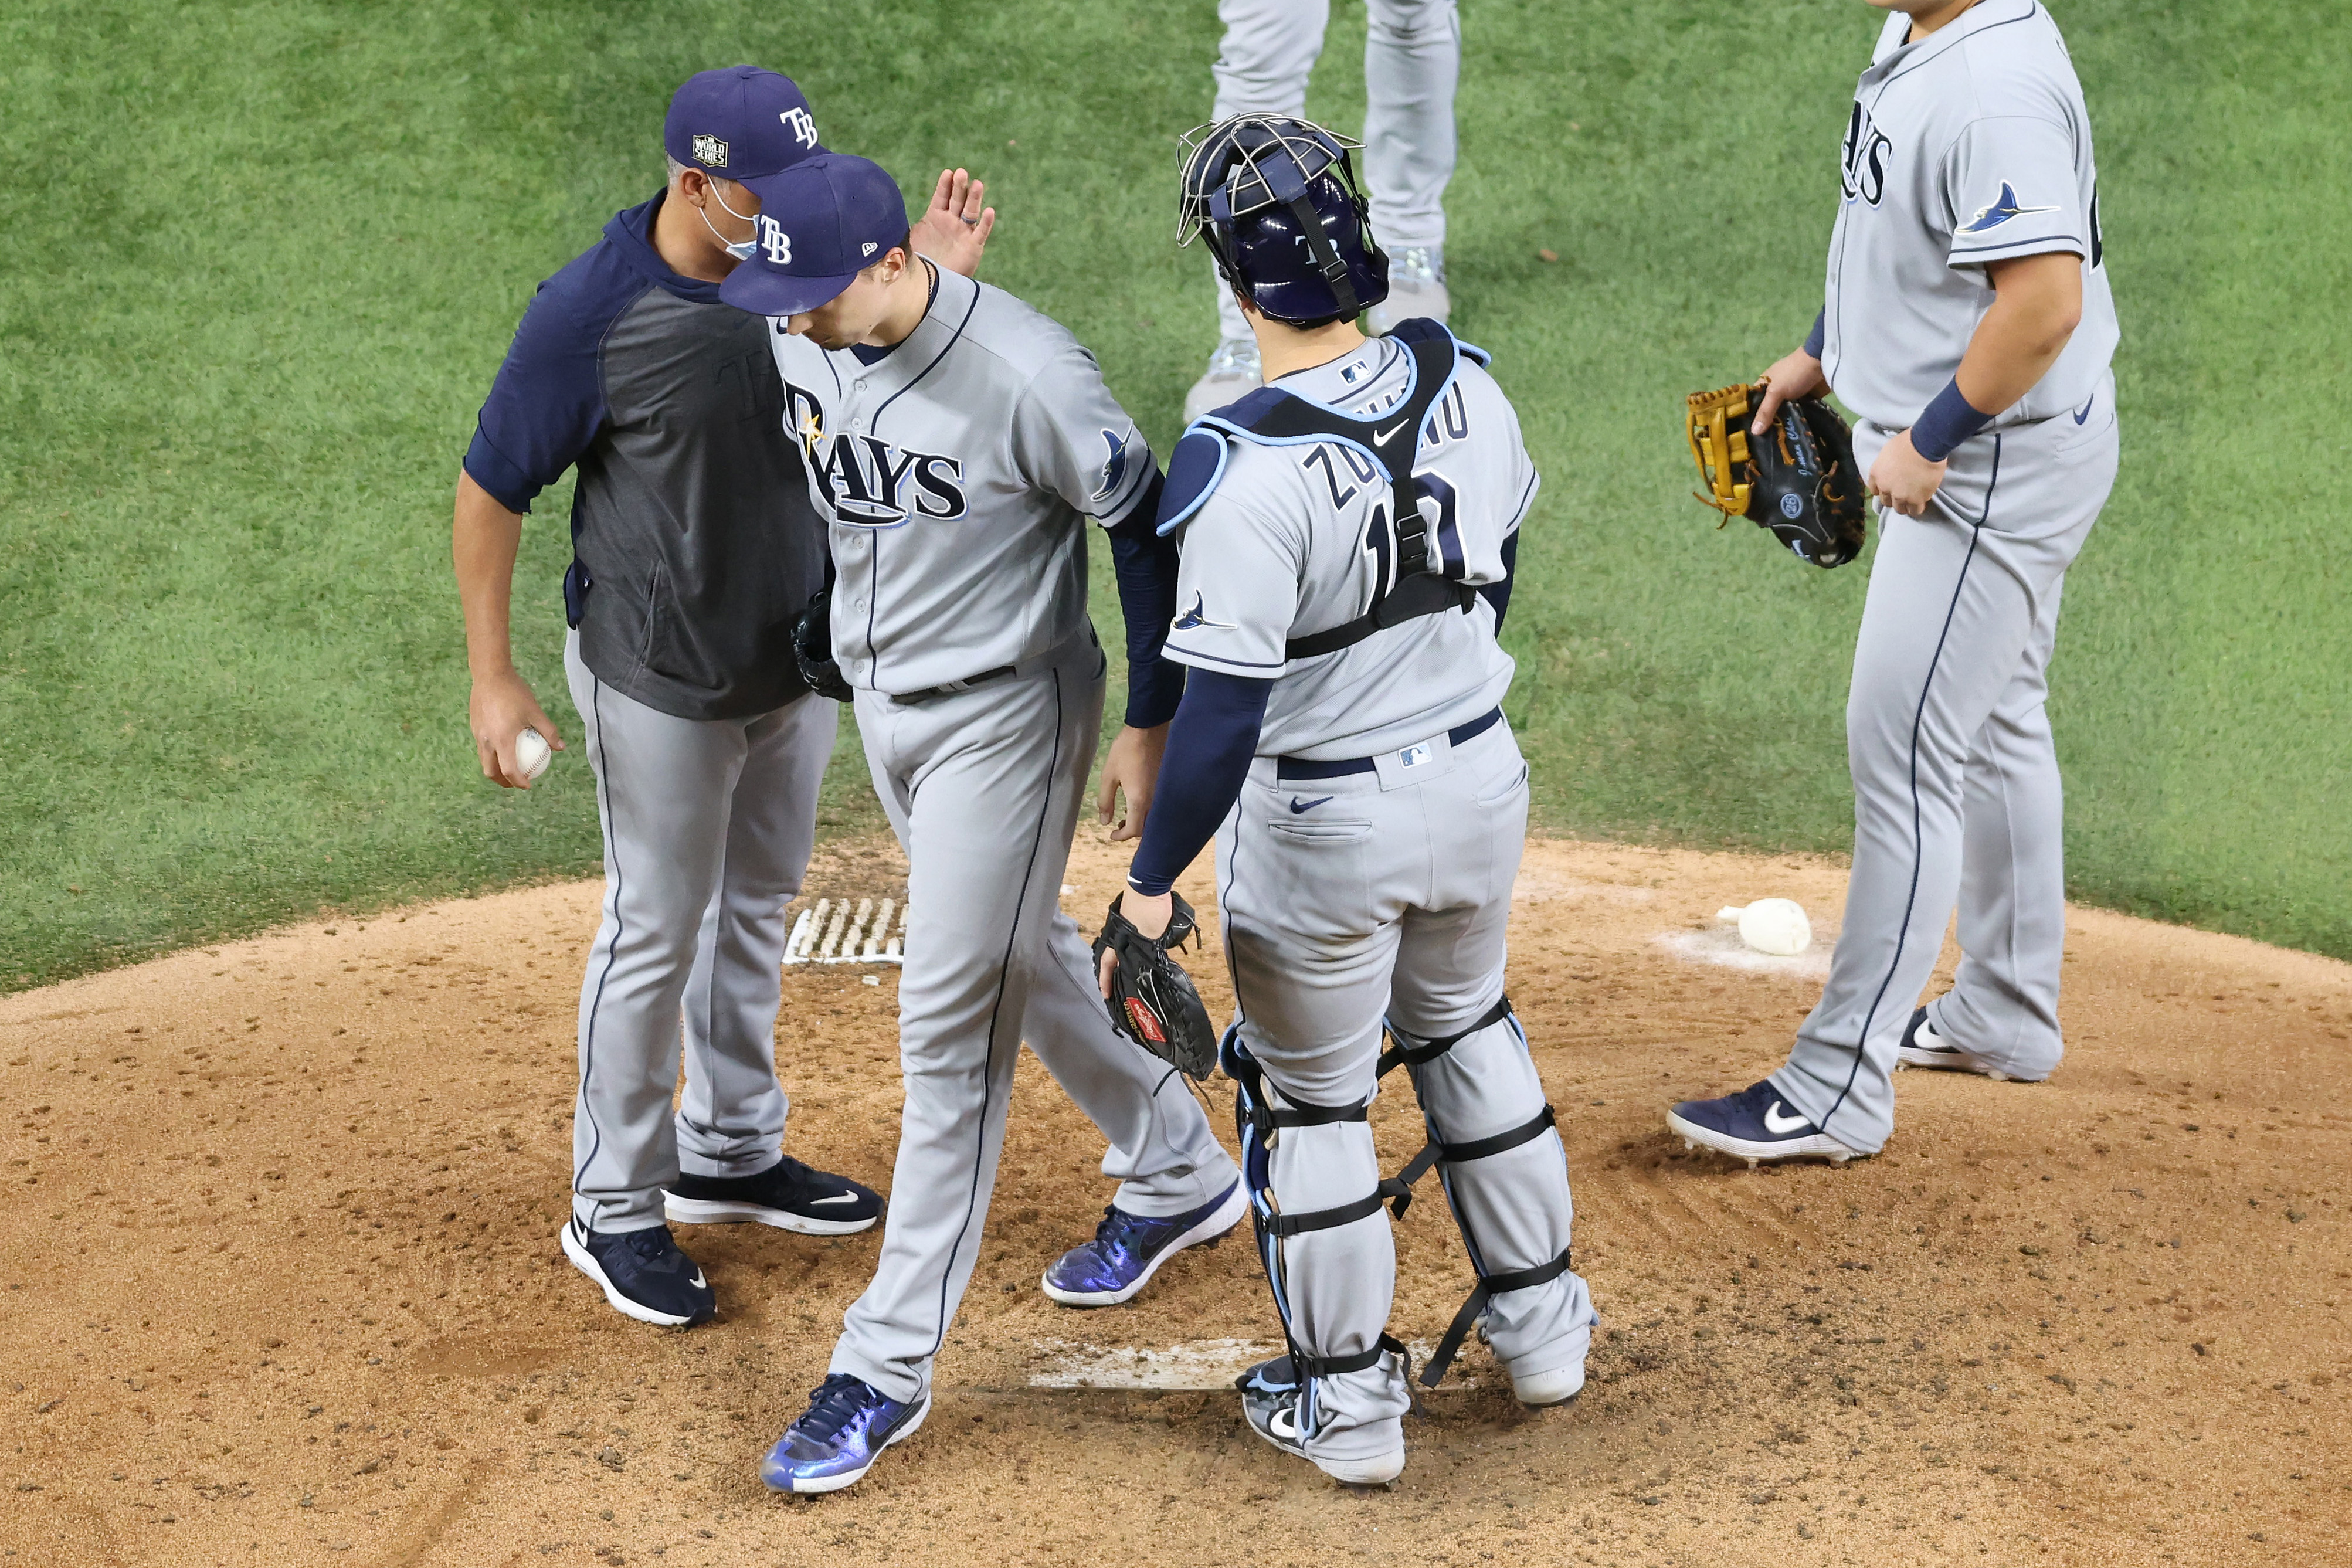 Blake Snell #4 of the Tampa Bay Rays is taken out of the game by manager Kevin Cash during the sixth inning against the Los Angeles Dodgers in Game Six of the 2020 MLB World Series at Globe Life Field on October 27, 2020 in Arlington, Texas.